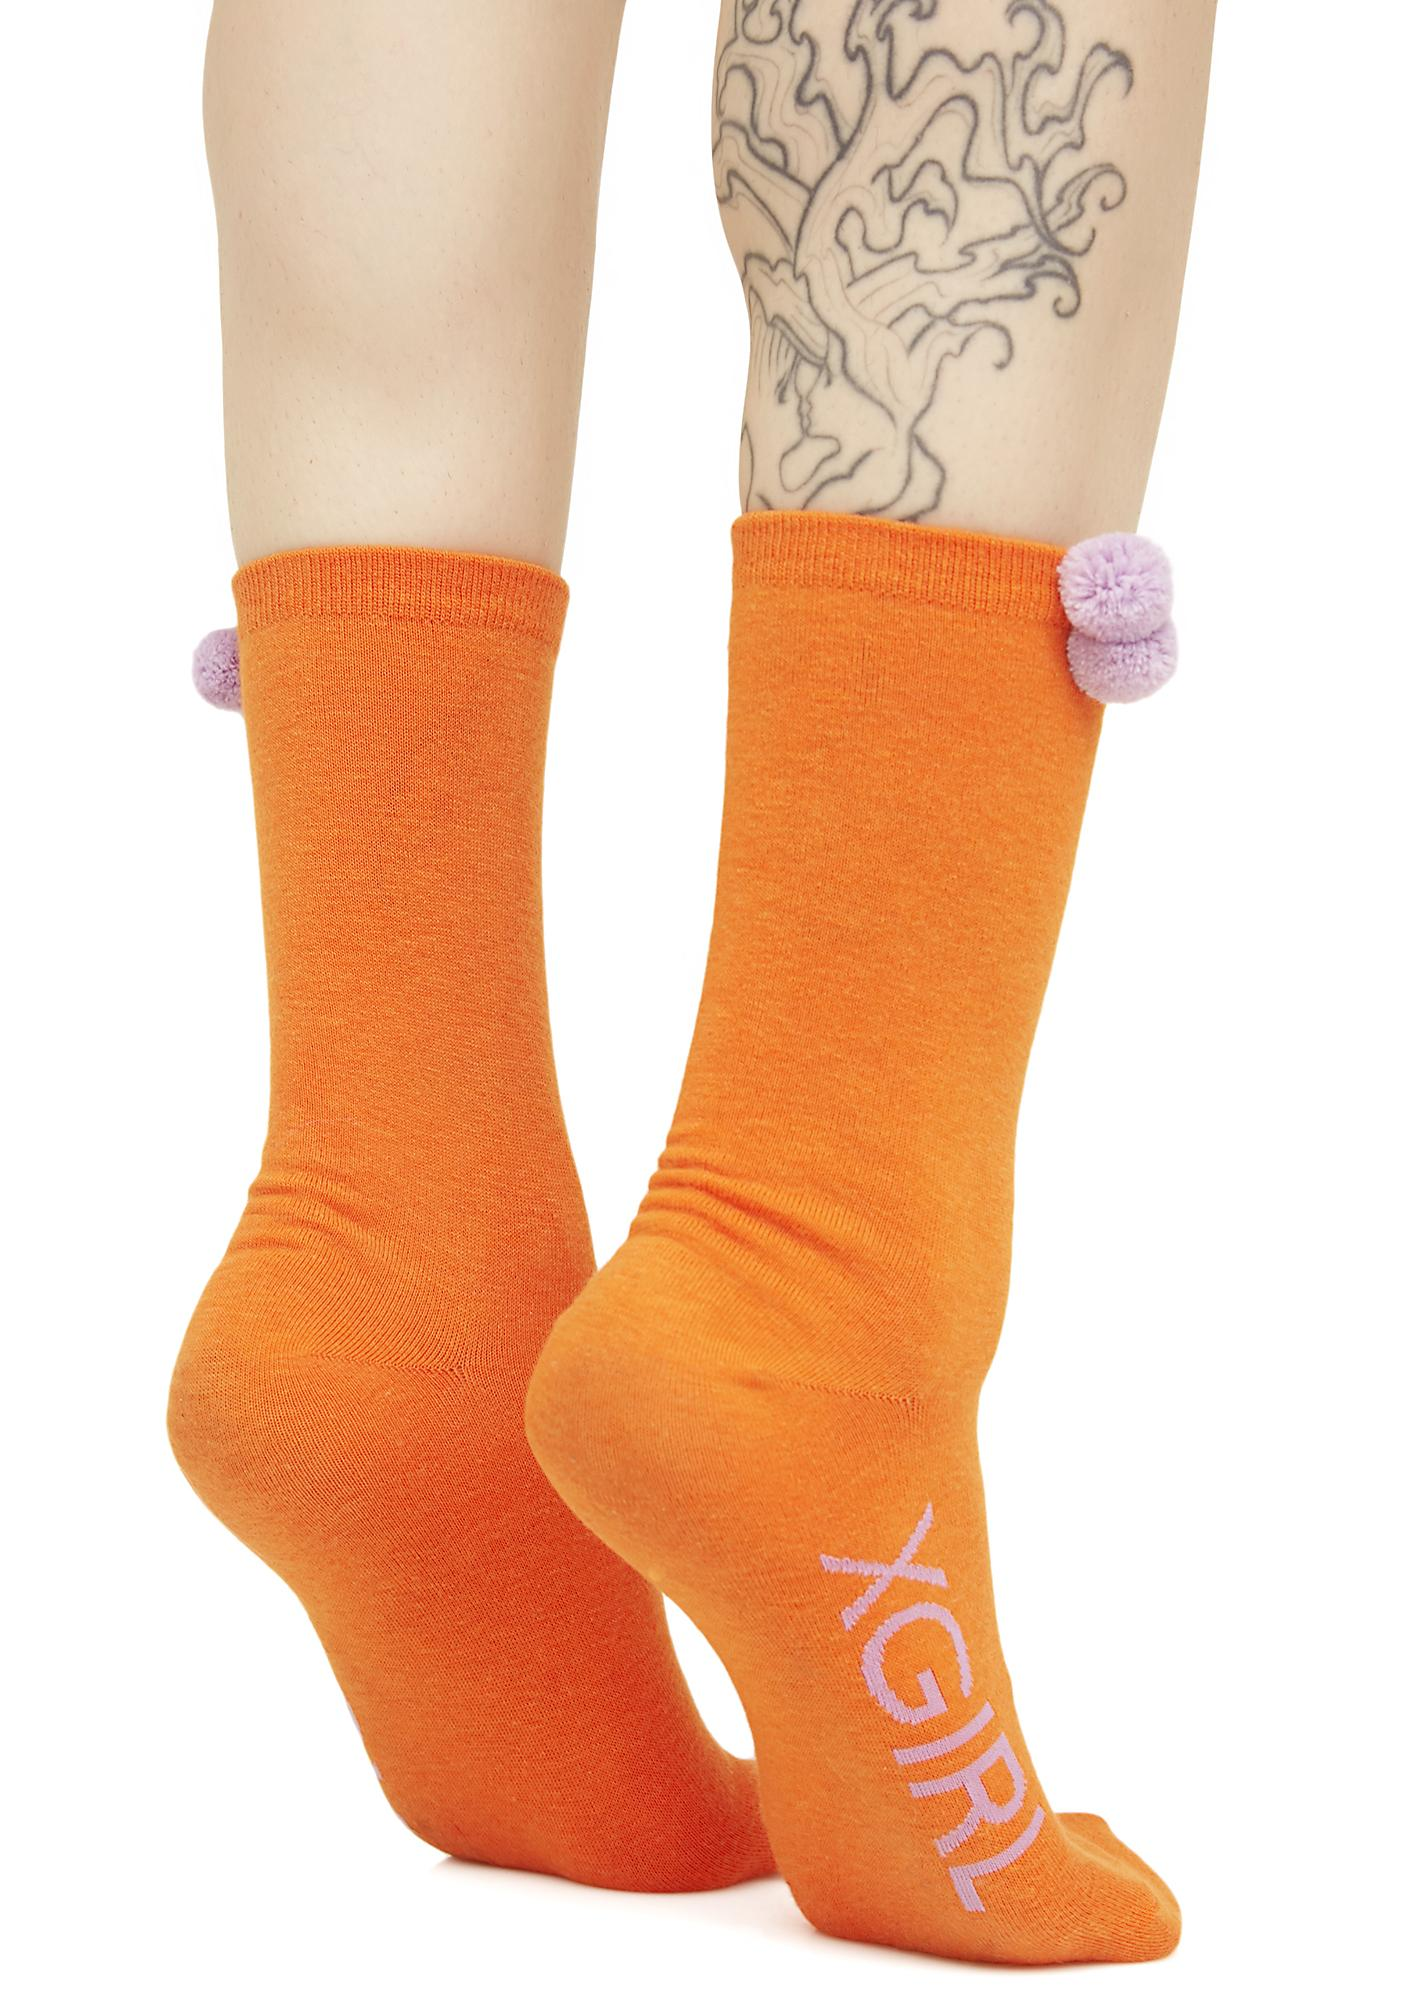 x-Girl Orange Pom Pom Socks